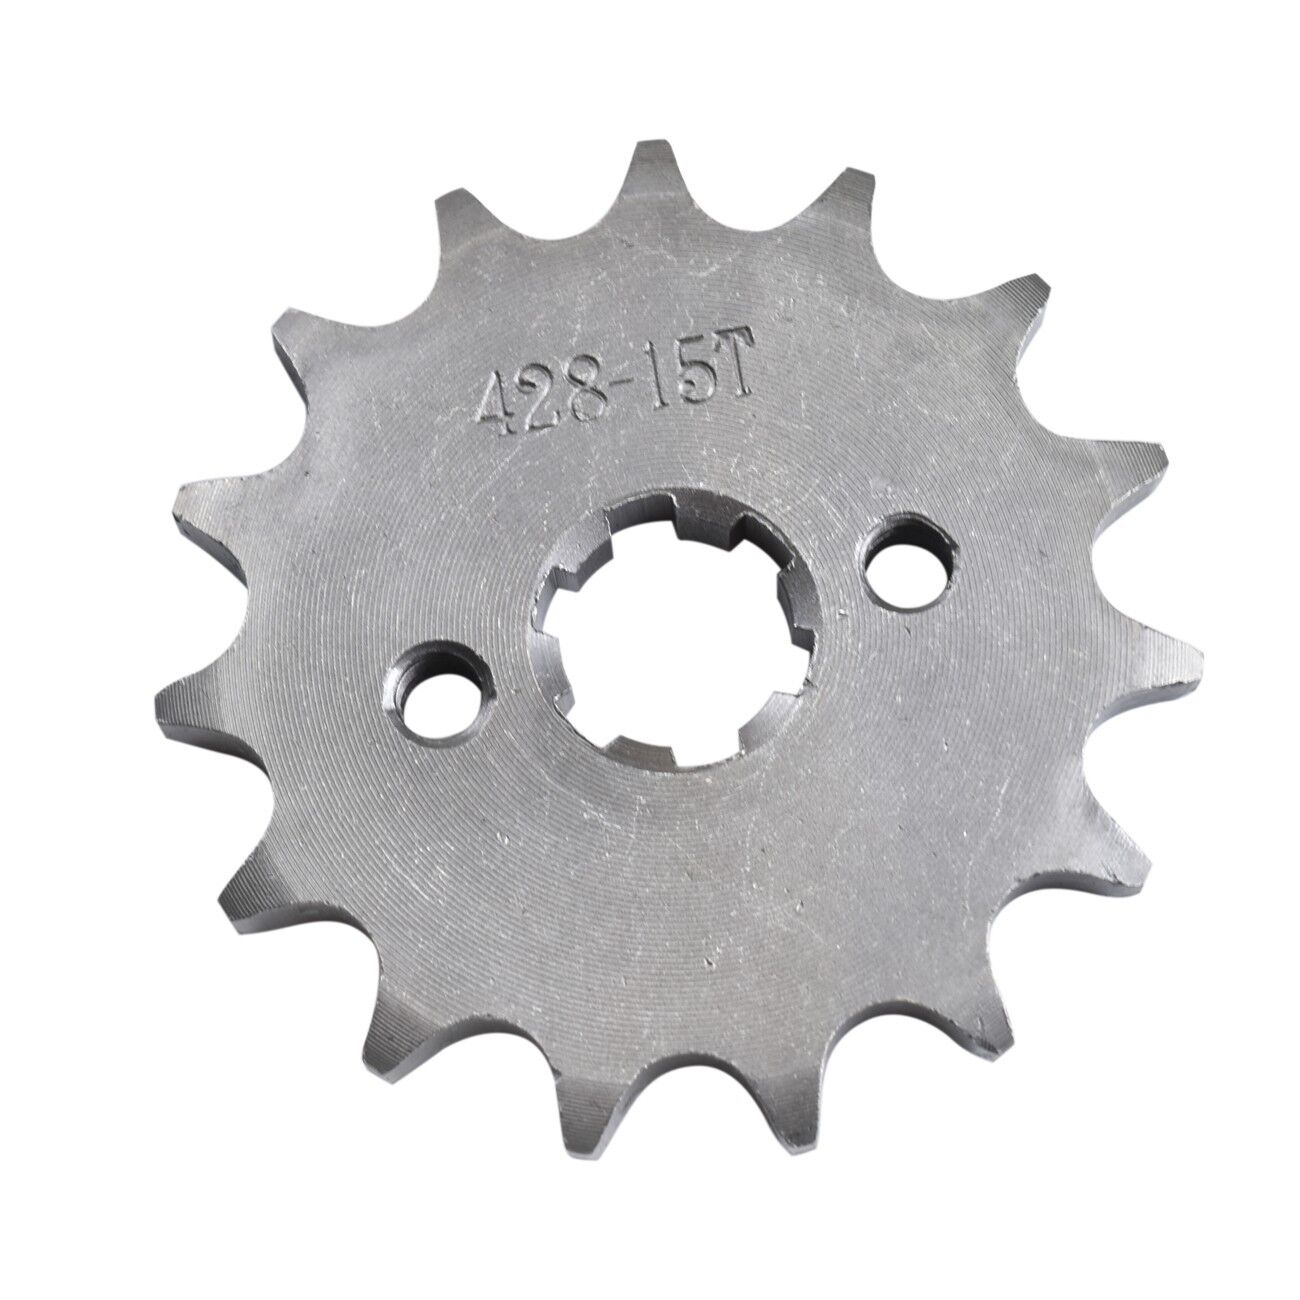 428 15T 17mm Front Engine Sprocket Metal Plate Gear Dirt Bike Lifan YX 90-160cc